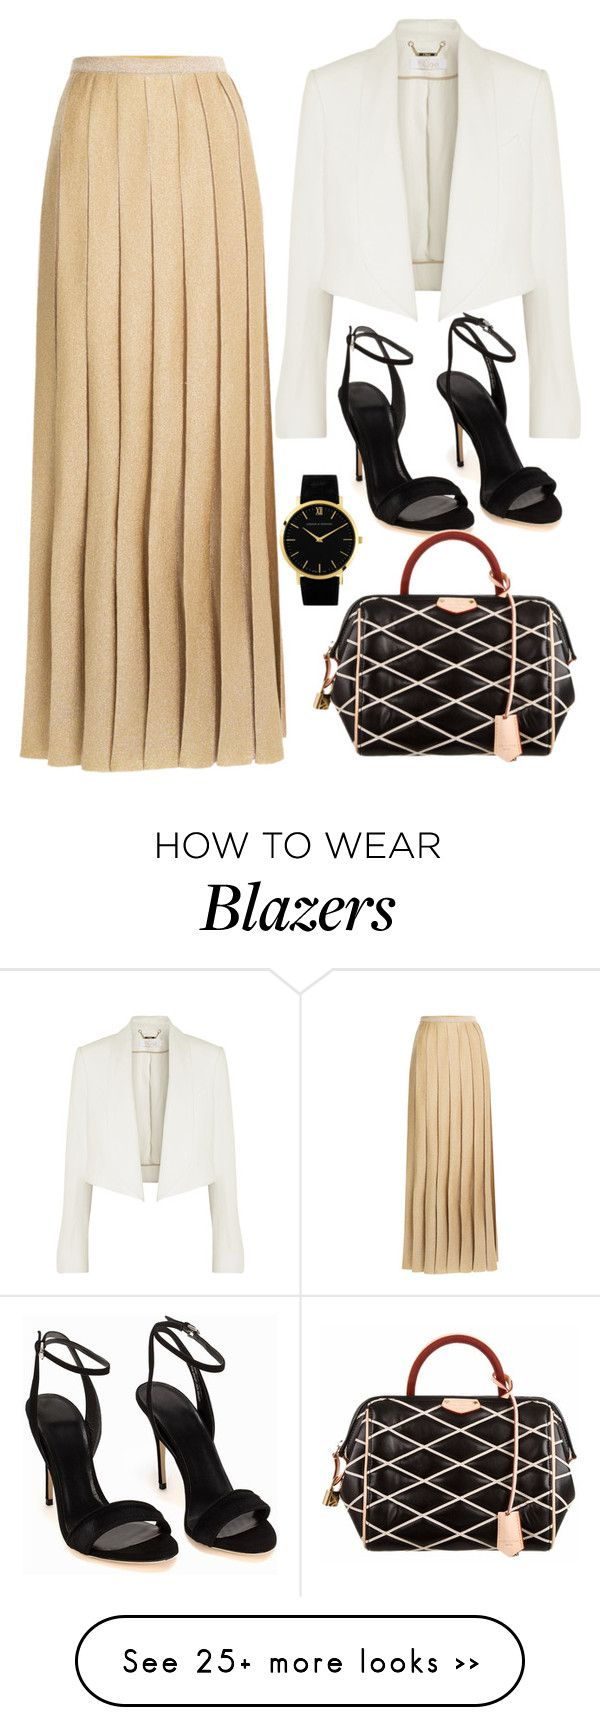 """Gold pleats"" by katiekorshunova on Polyvore featuring Missoni, Chloé, Louis Vuitton and Larsson & Jennings"